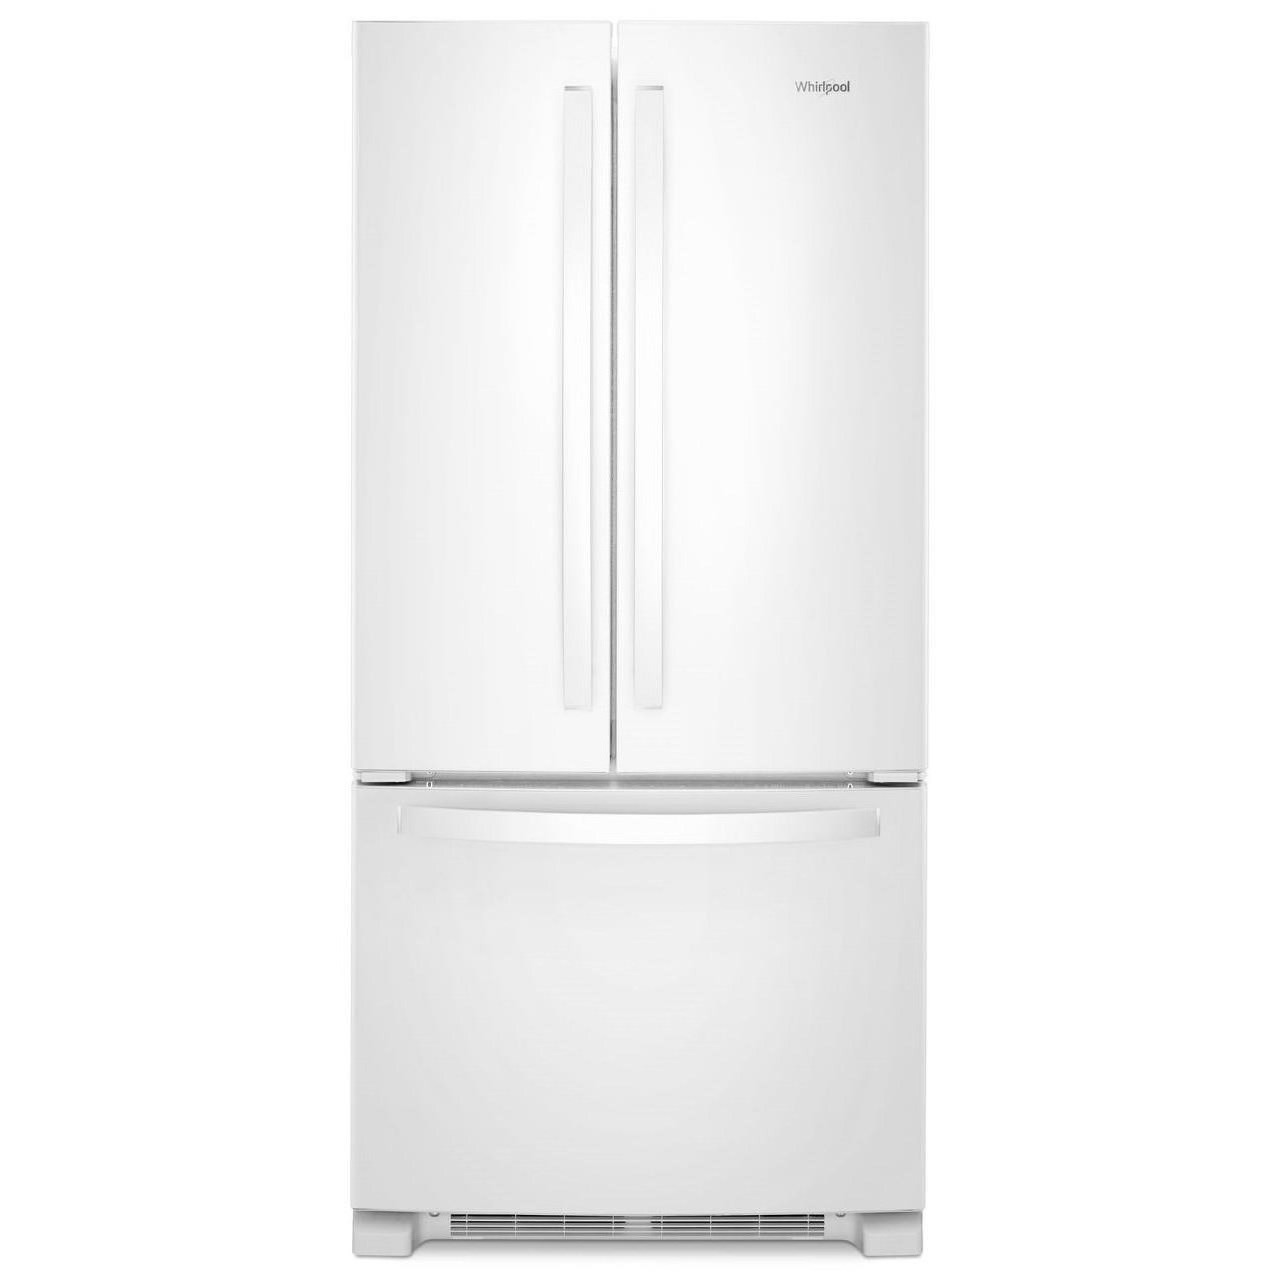 33 inch wide french door refrigerator. Whirlpool French Door Refrigerators 33-inch Wide Refrigerator - 22 Cu. Ft 33 Inch